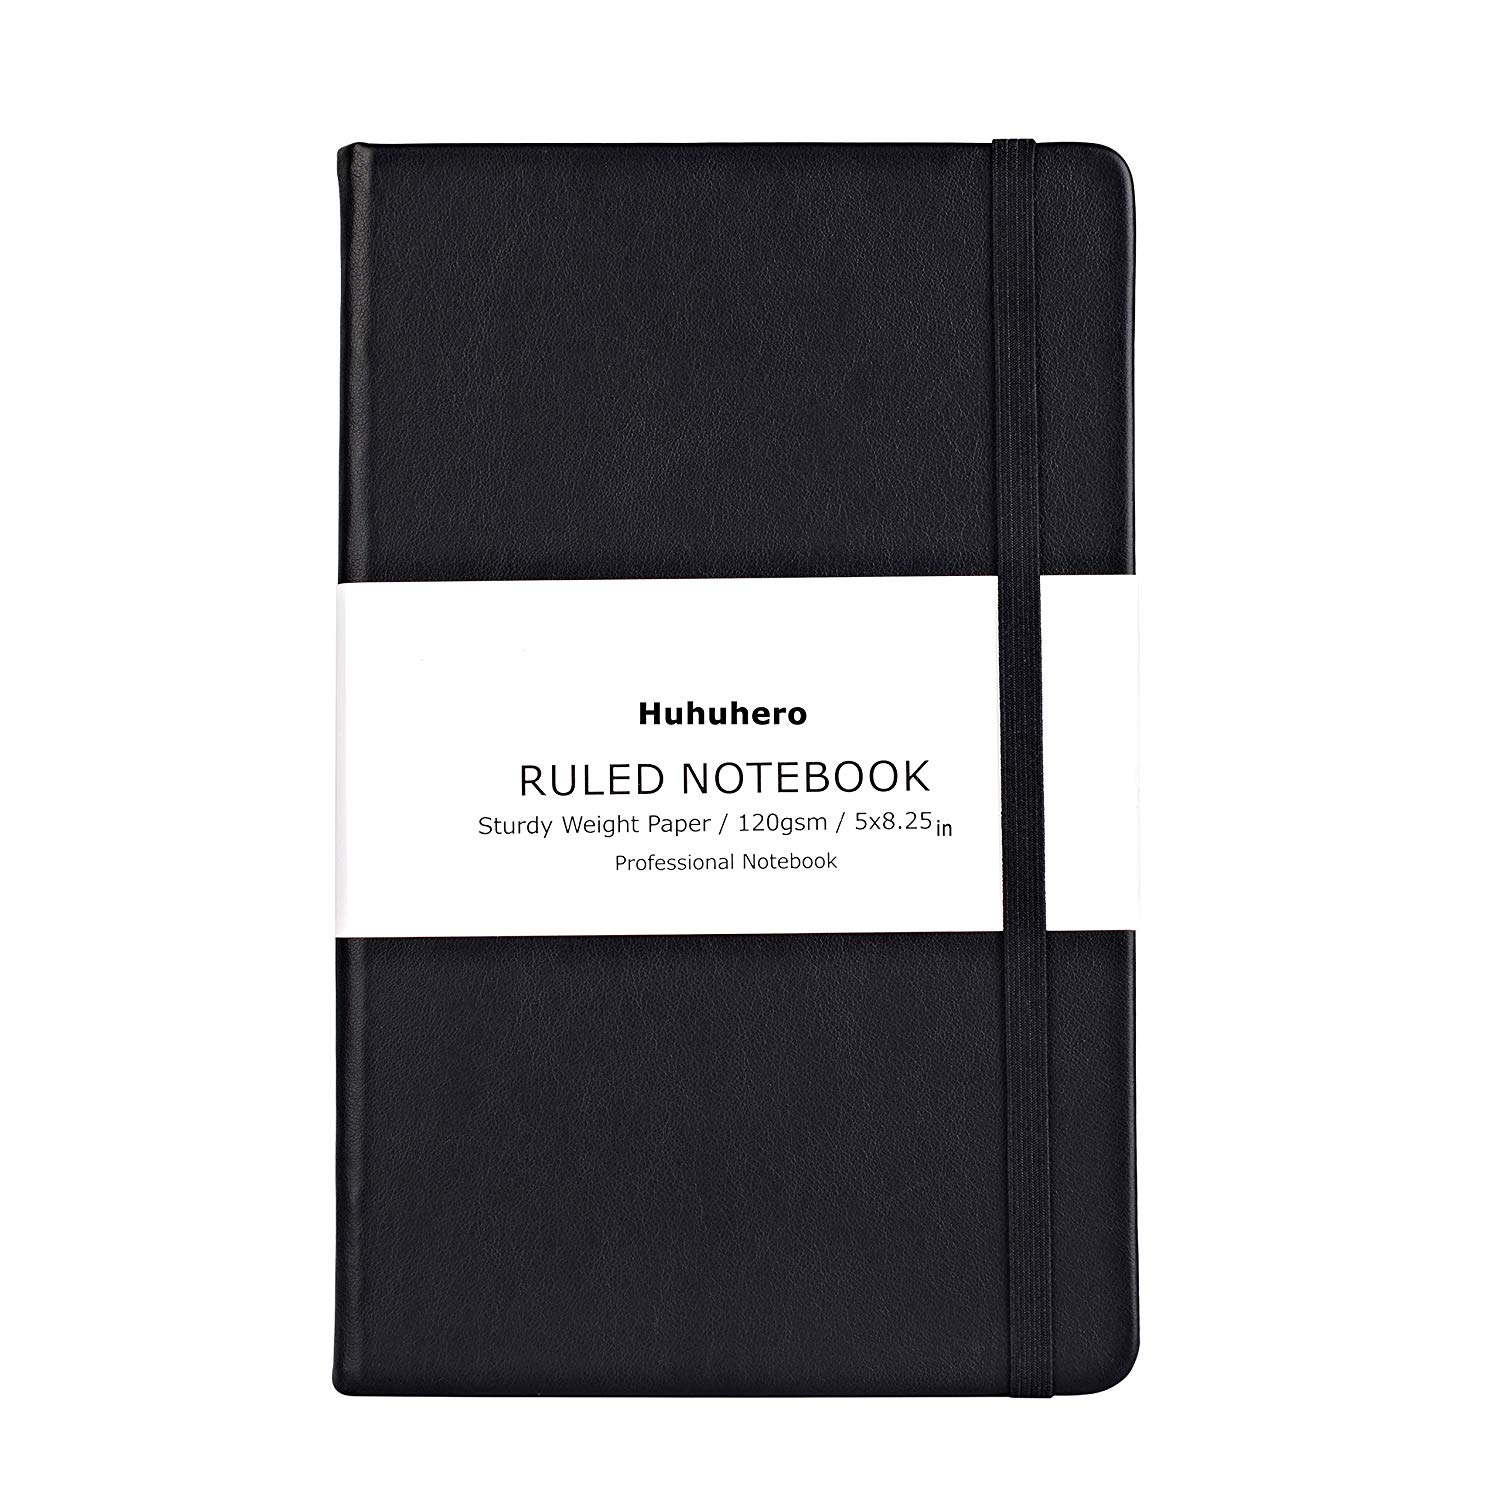 "Travel Journal: Huhuhero Notebook Journal, Classic Ruled Hard Cover, Premium Thick Paper with Fine Inner Pocket, Black Faux Leather for Journaling Writing Note Taking Diary and Planner, 5""×8.3"" (1)"